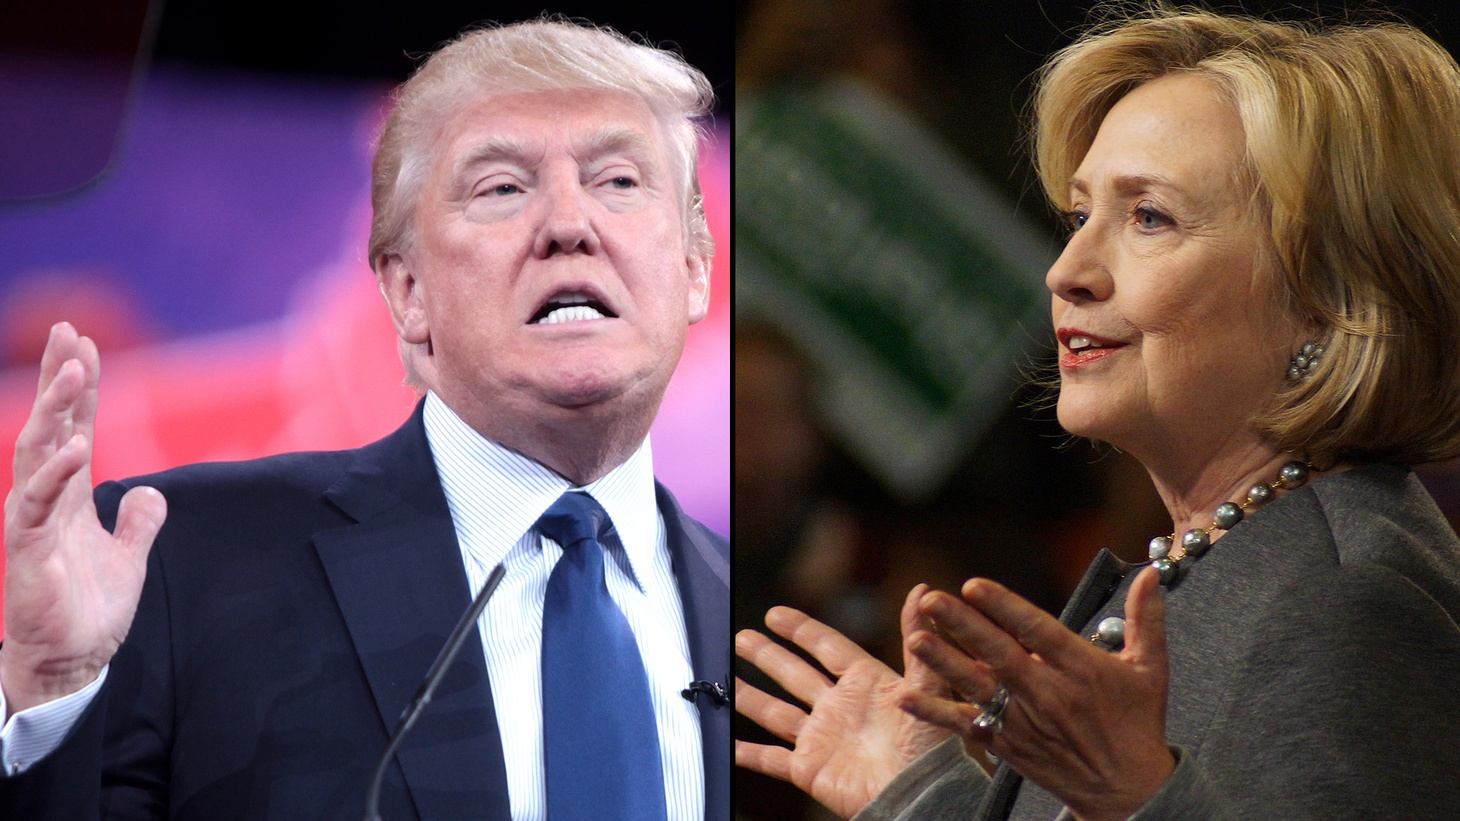 In the aftermath of yesterday's primaries in five northeastern states, Hillary Clinton and Donald Trump are both claiming the presidential nominations have been decided. We hear what that means for Democrats and Republicans before the conventions as the primaries continue.